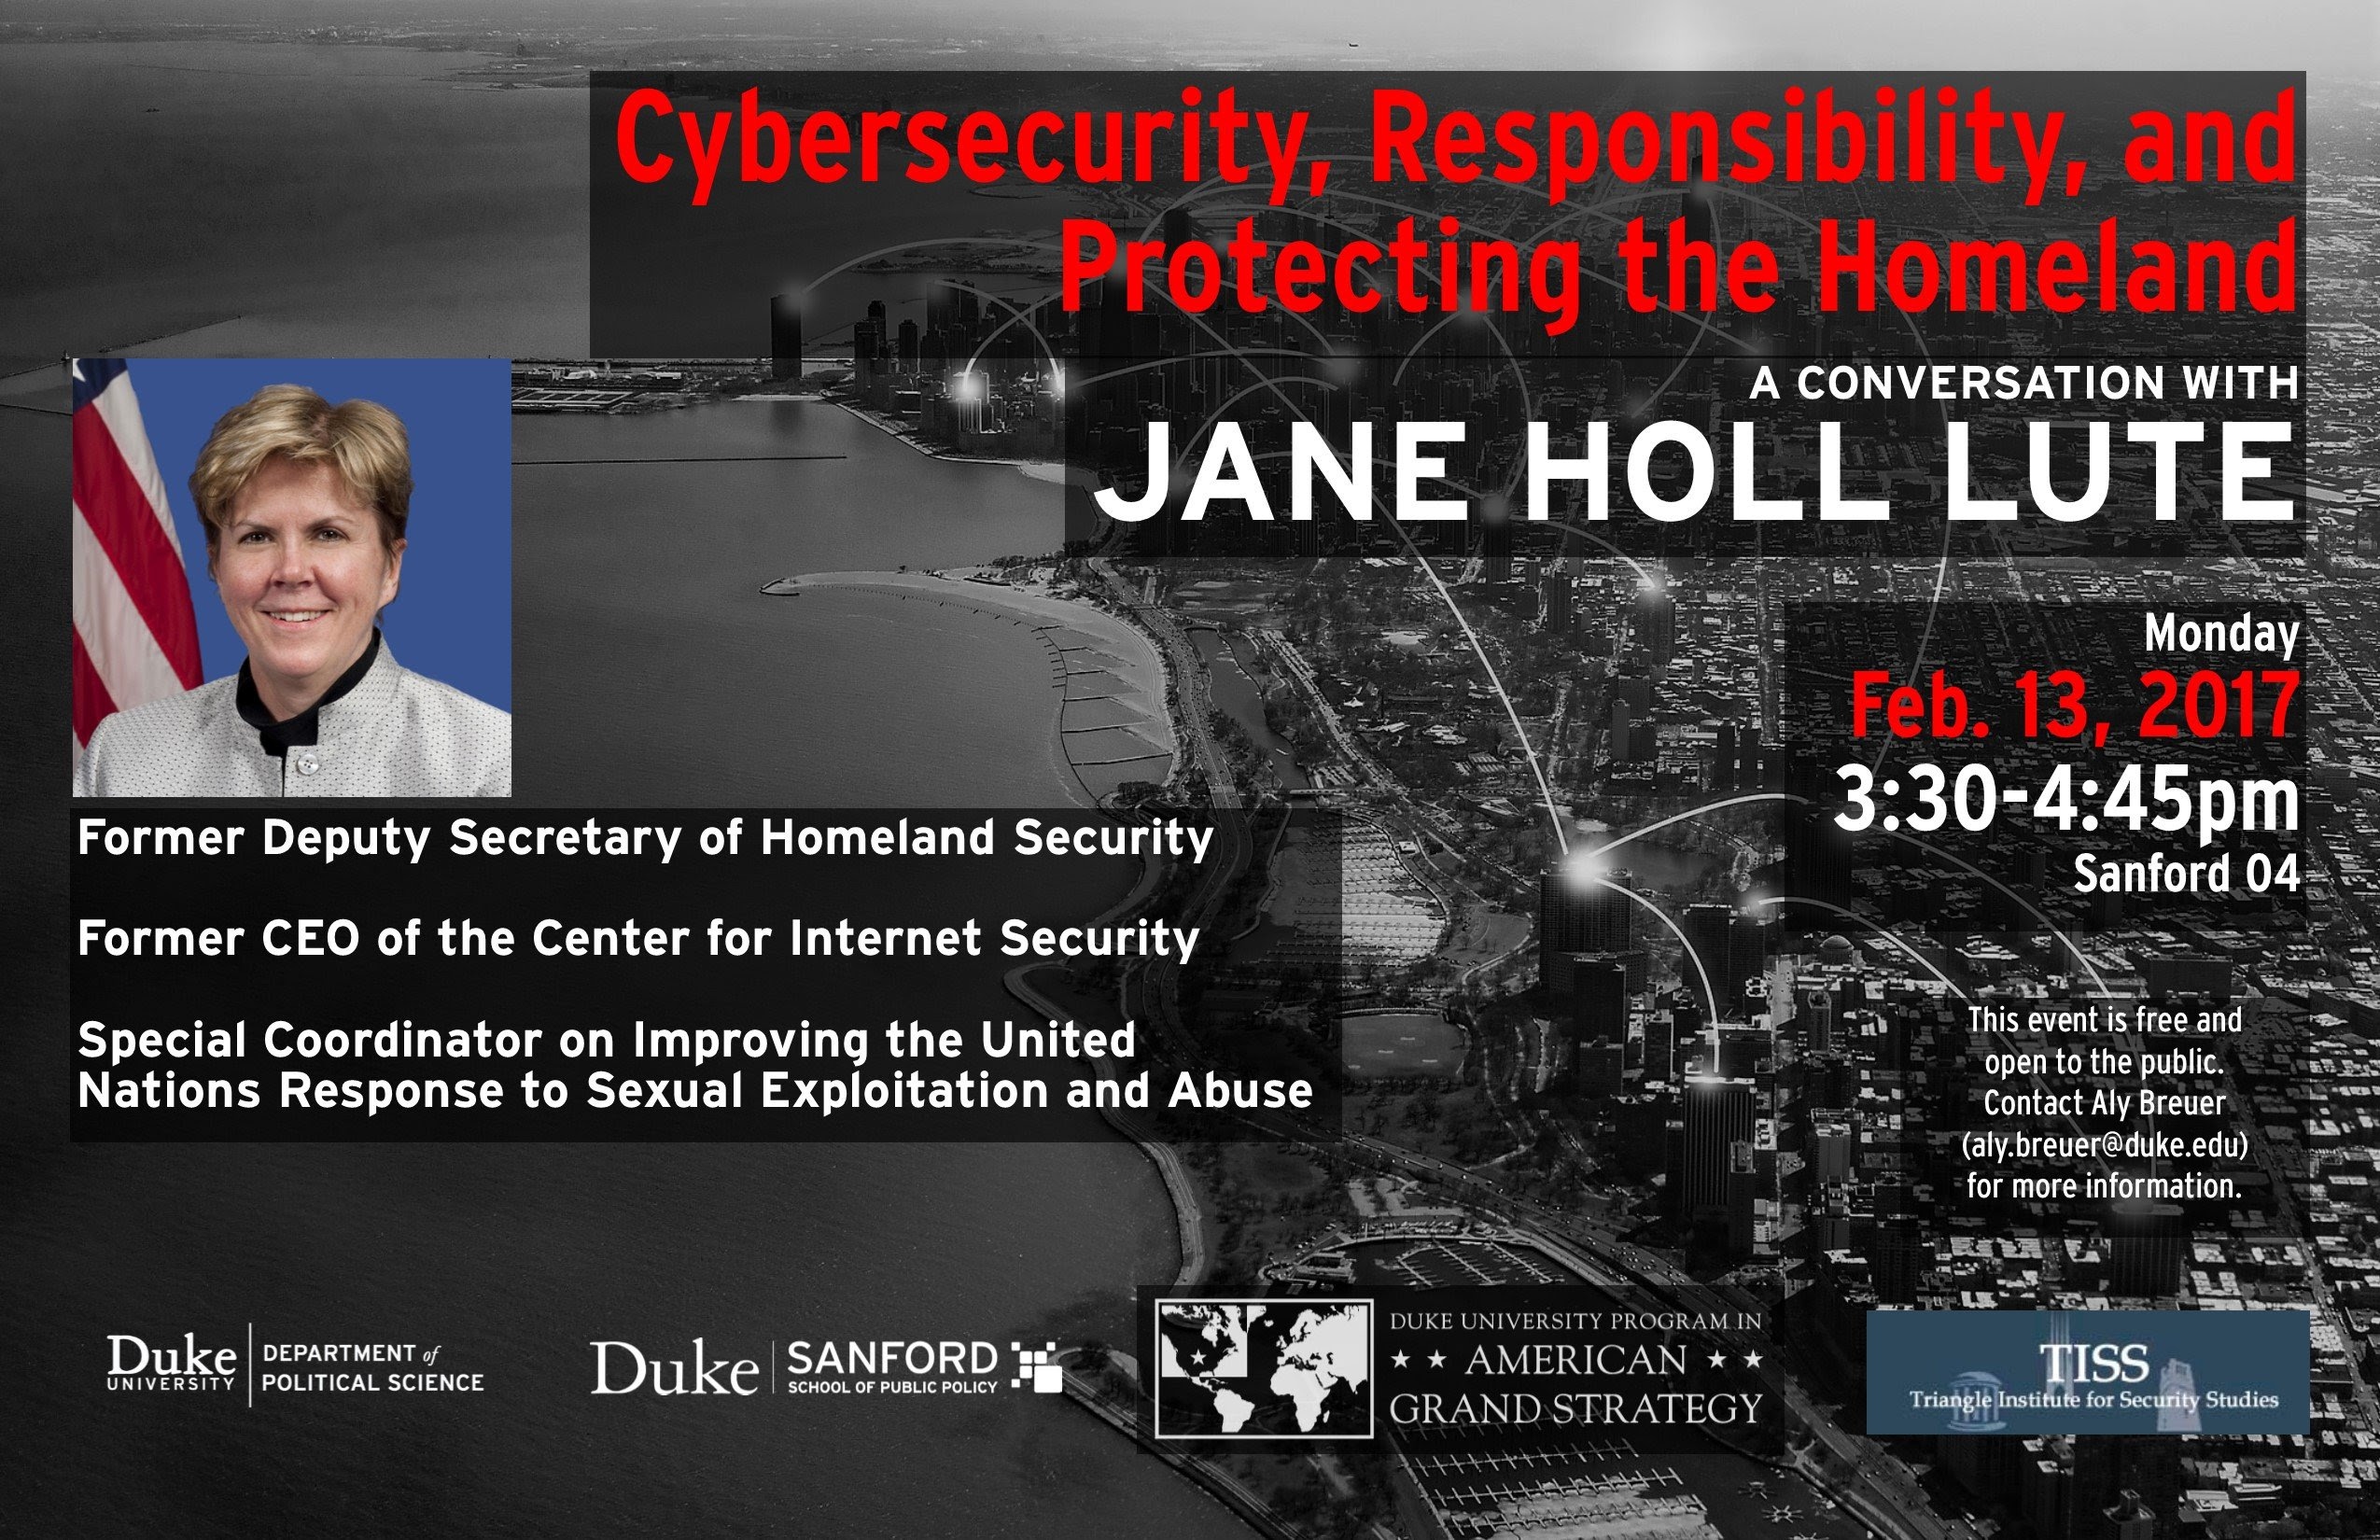 Cybersecurity, Responsibility & Protecting the Homeland, A Conversation with Jane Holl Lute @ Sanford 04, Sanford School of Public Policy | Durham | North Carolina | United States